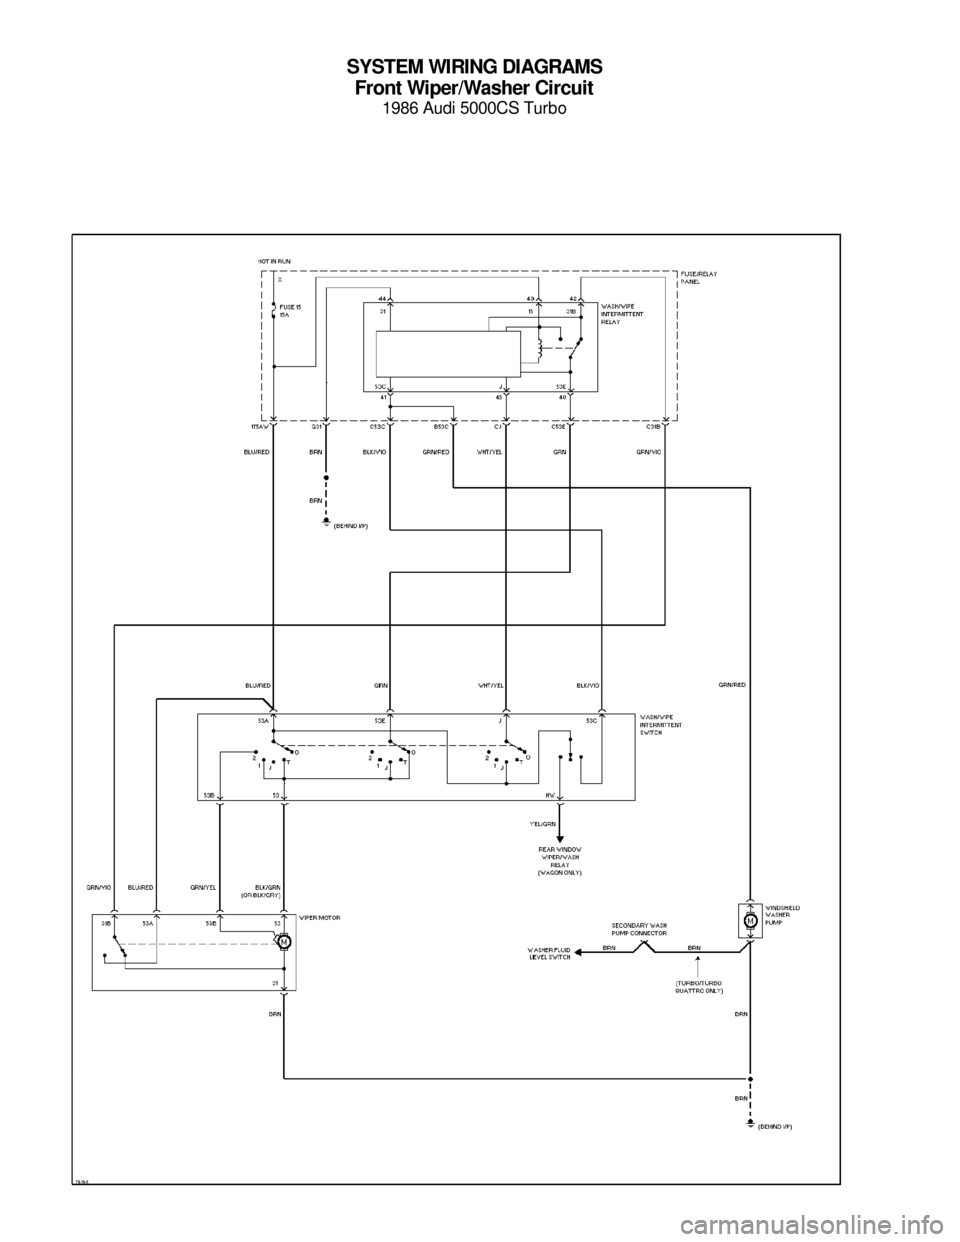 hight resolution of audi 5000cs 1986 c2 system wiring diagram volkswagen seat wiring air cooled vw wiring diagram